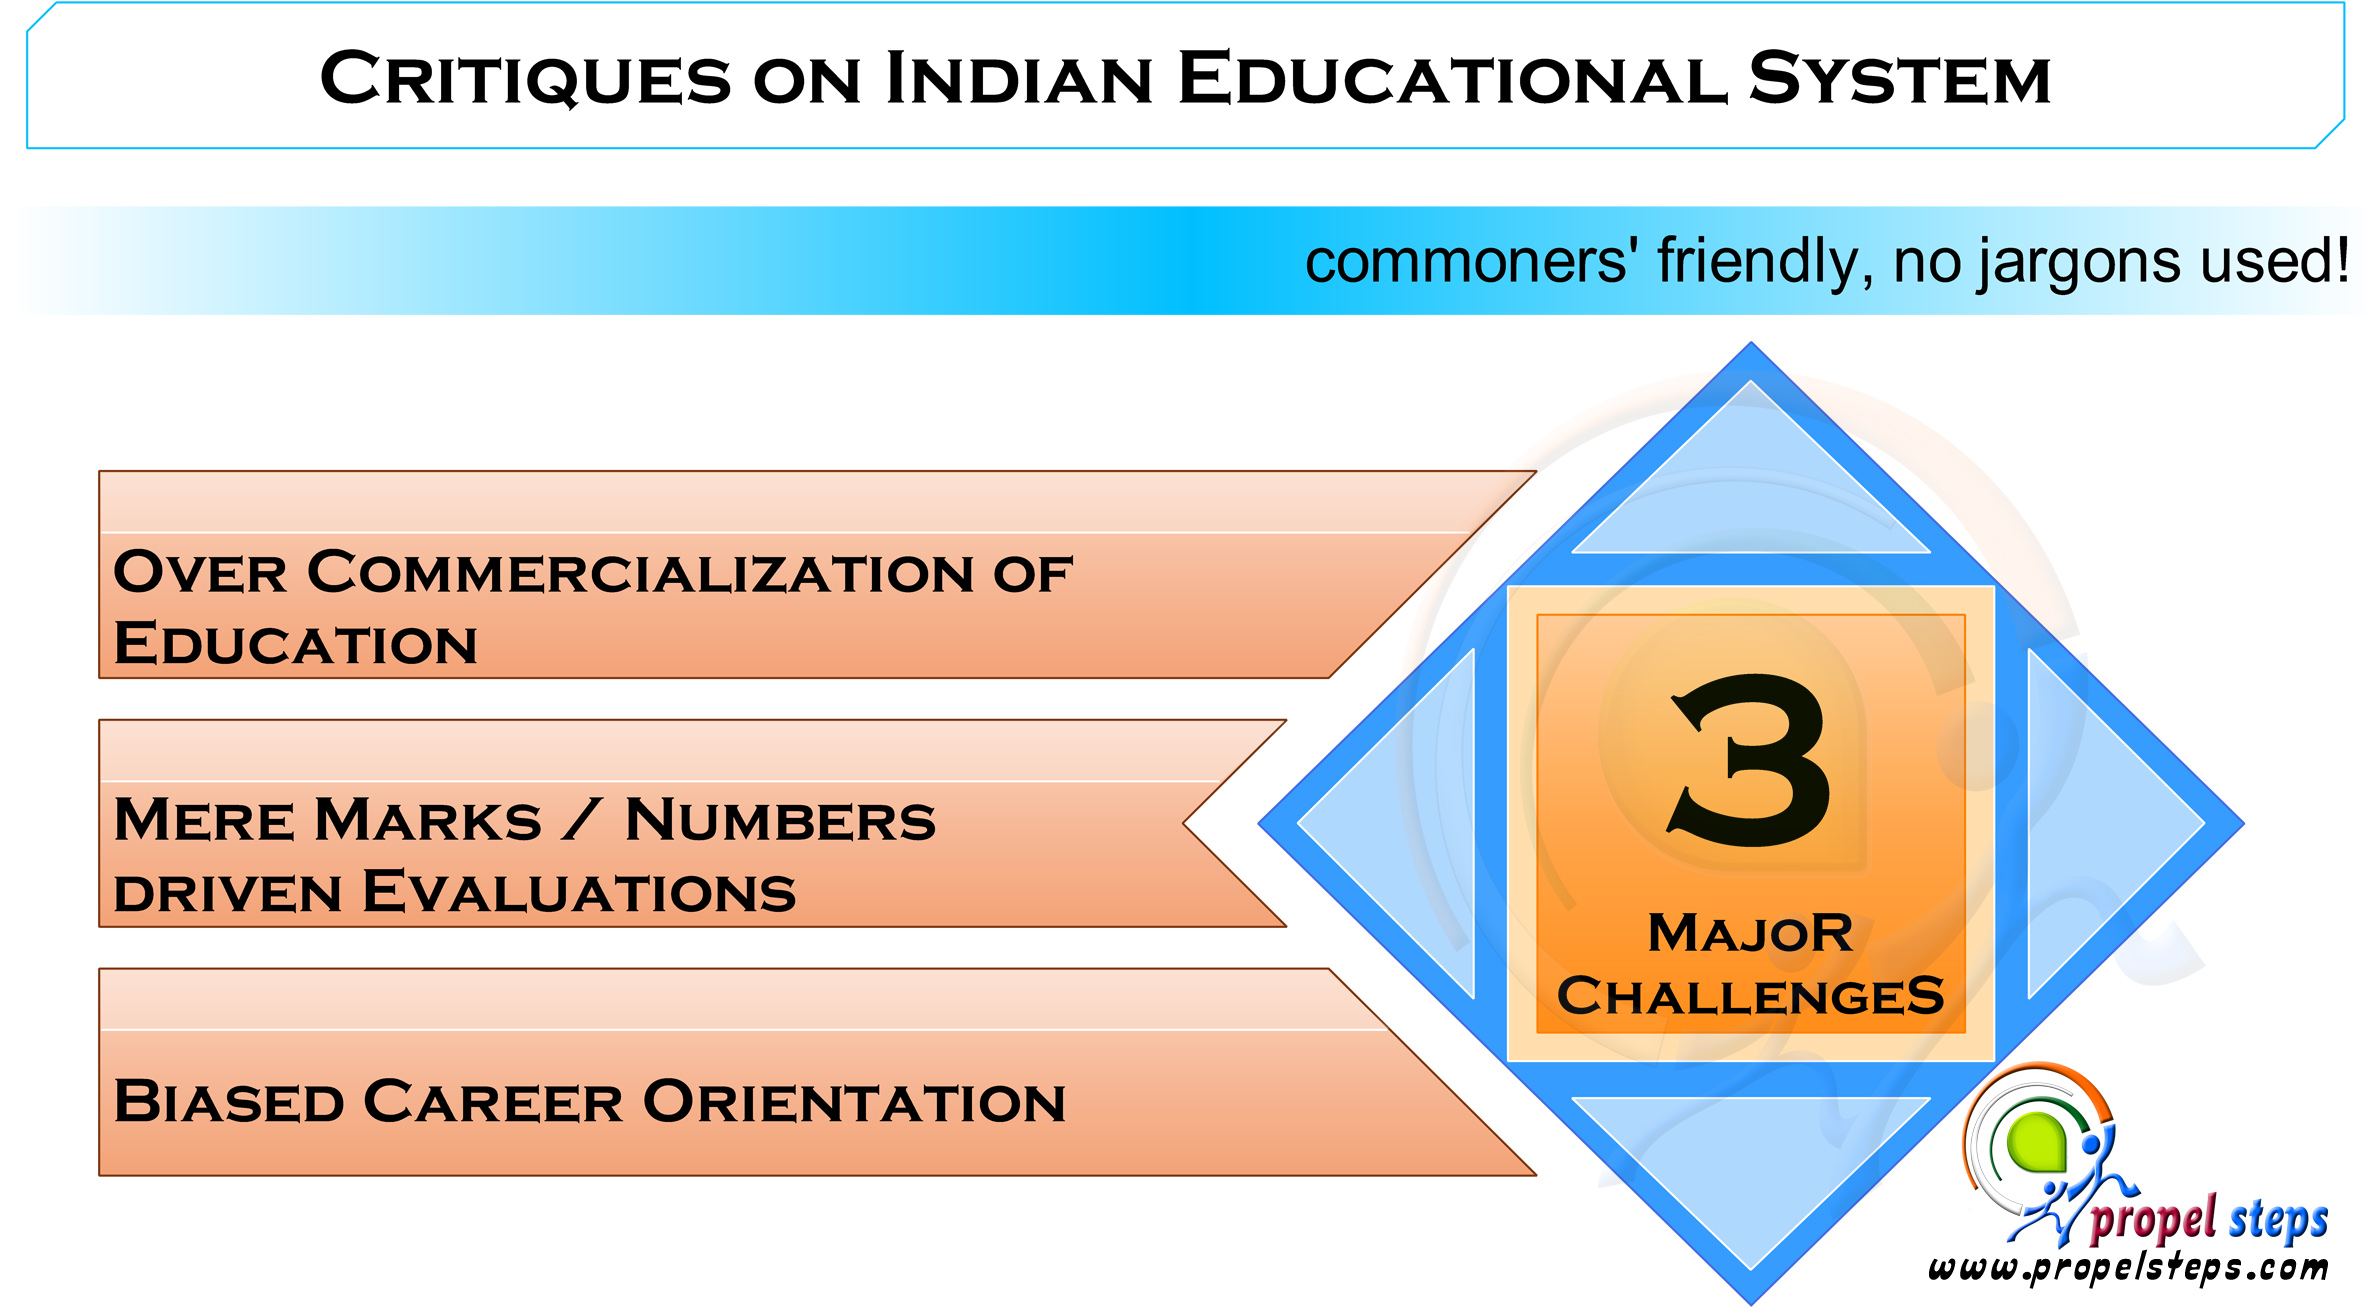 001 Essay On Education System In India And Abroad Research Paper Critiques Magnificent Full